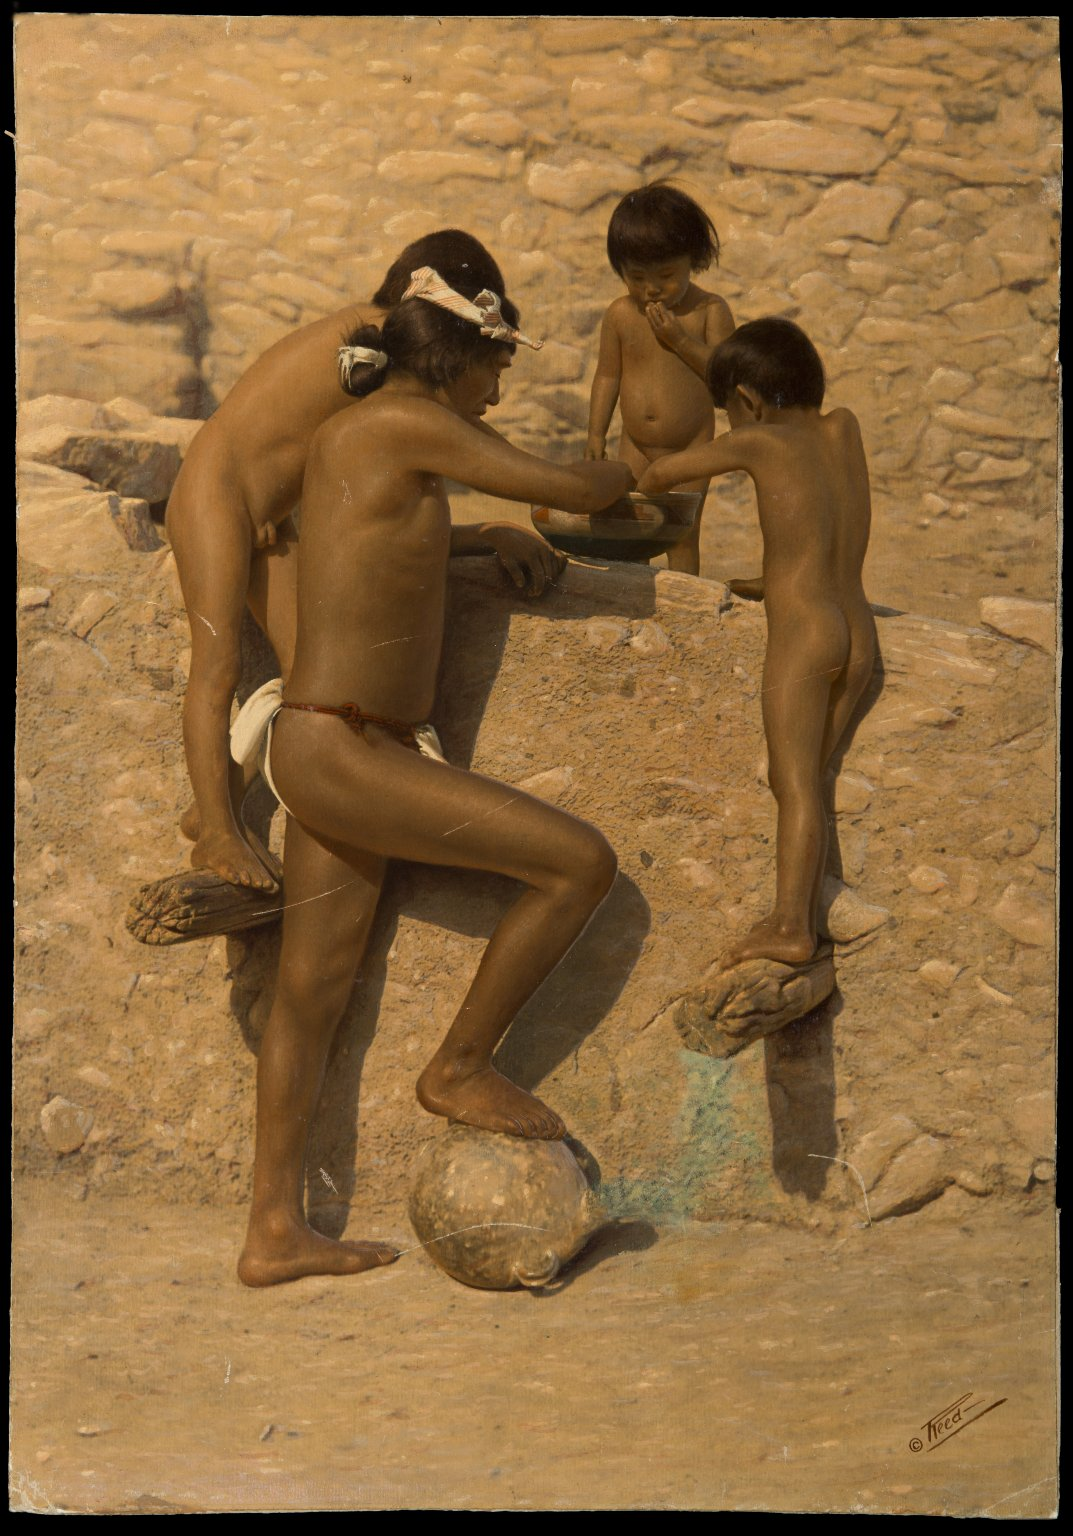 Hopi man and 3 children eating from bowl